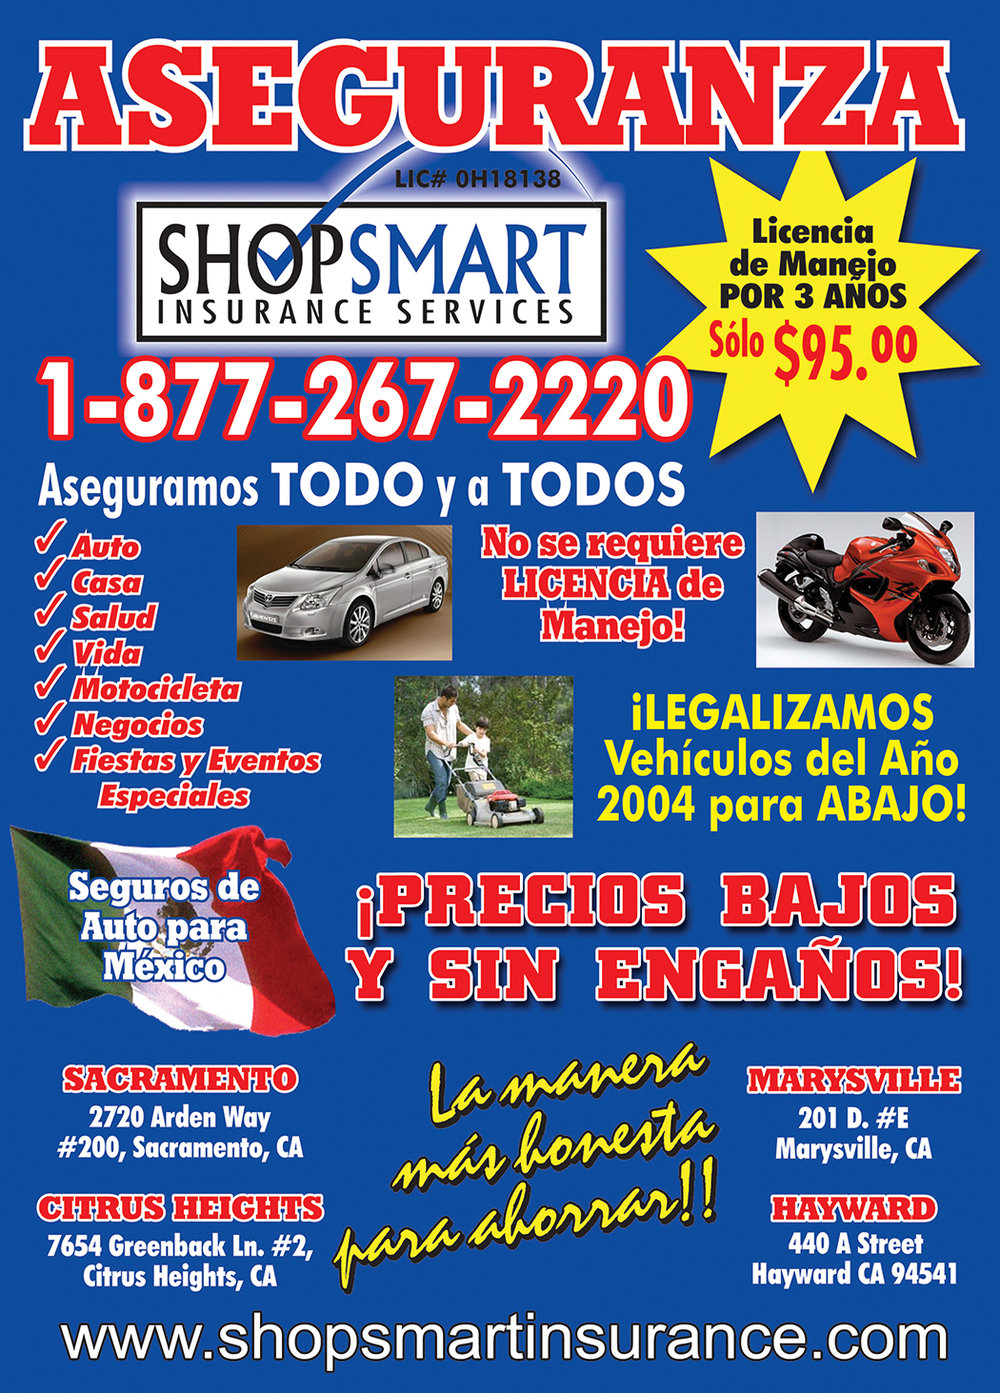 Shopsmart Insurance 1pag junio 2012.jpg